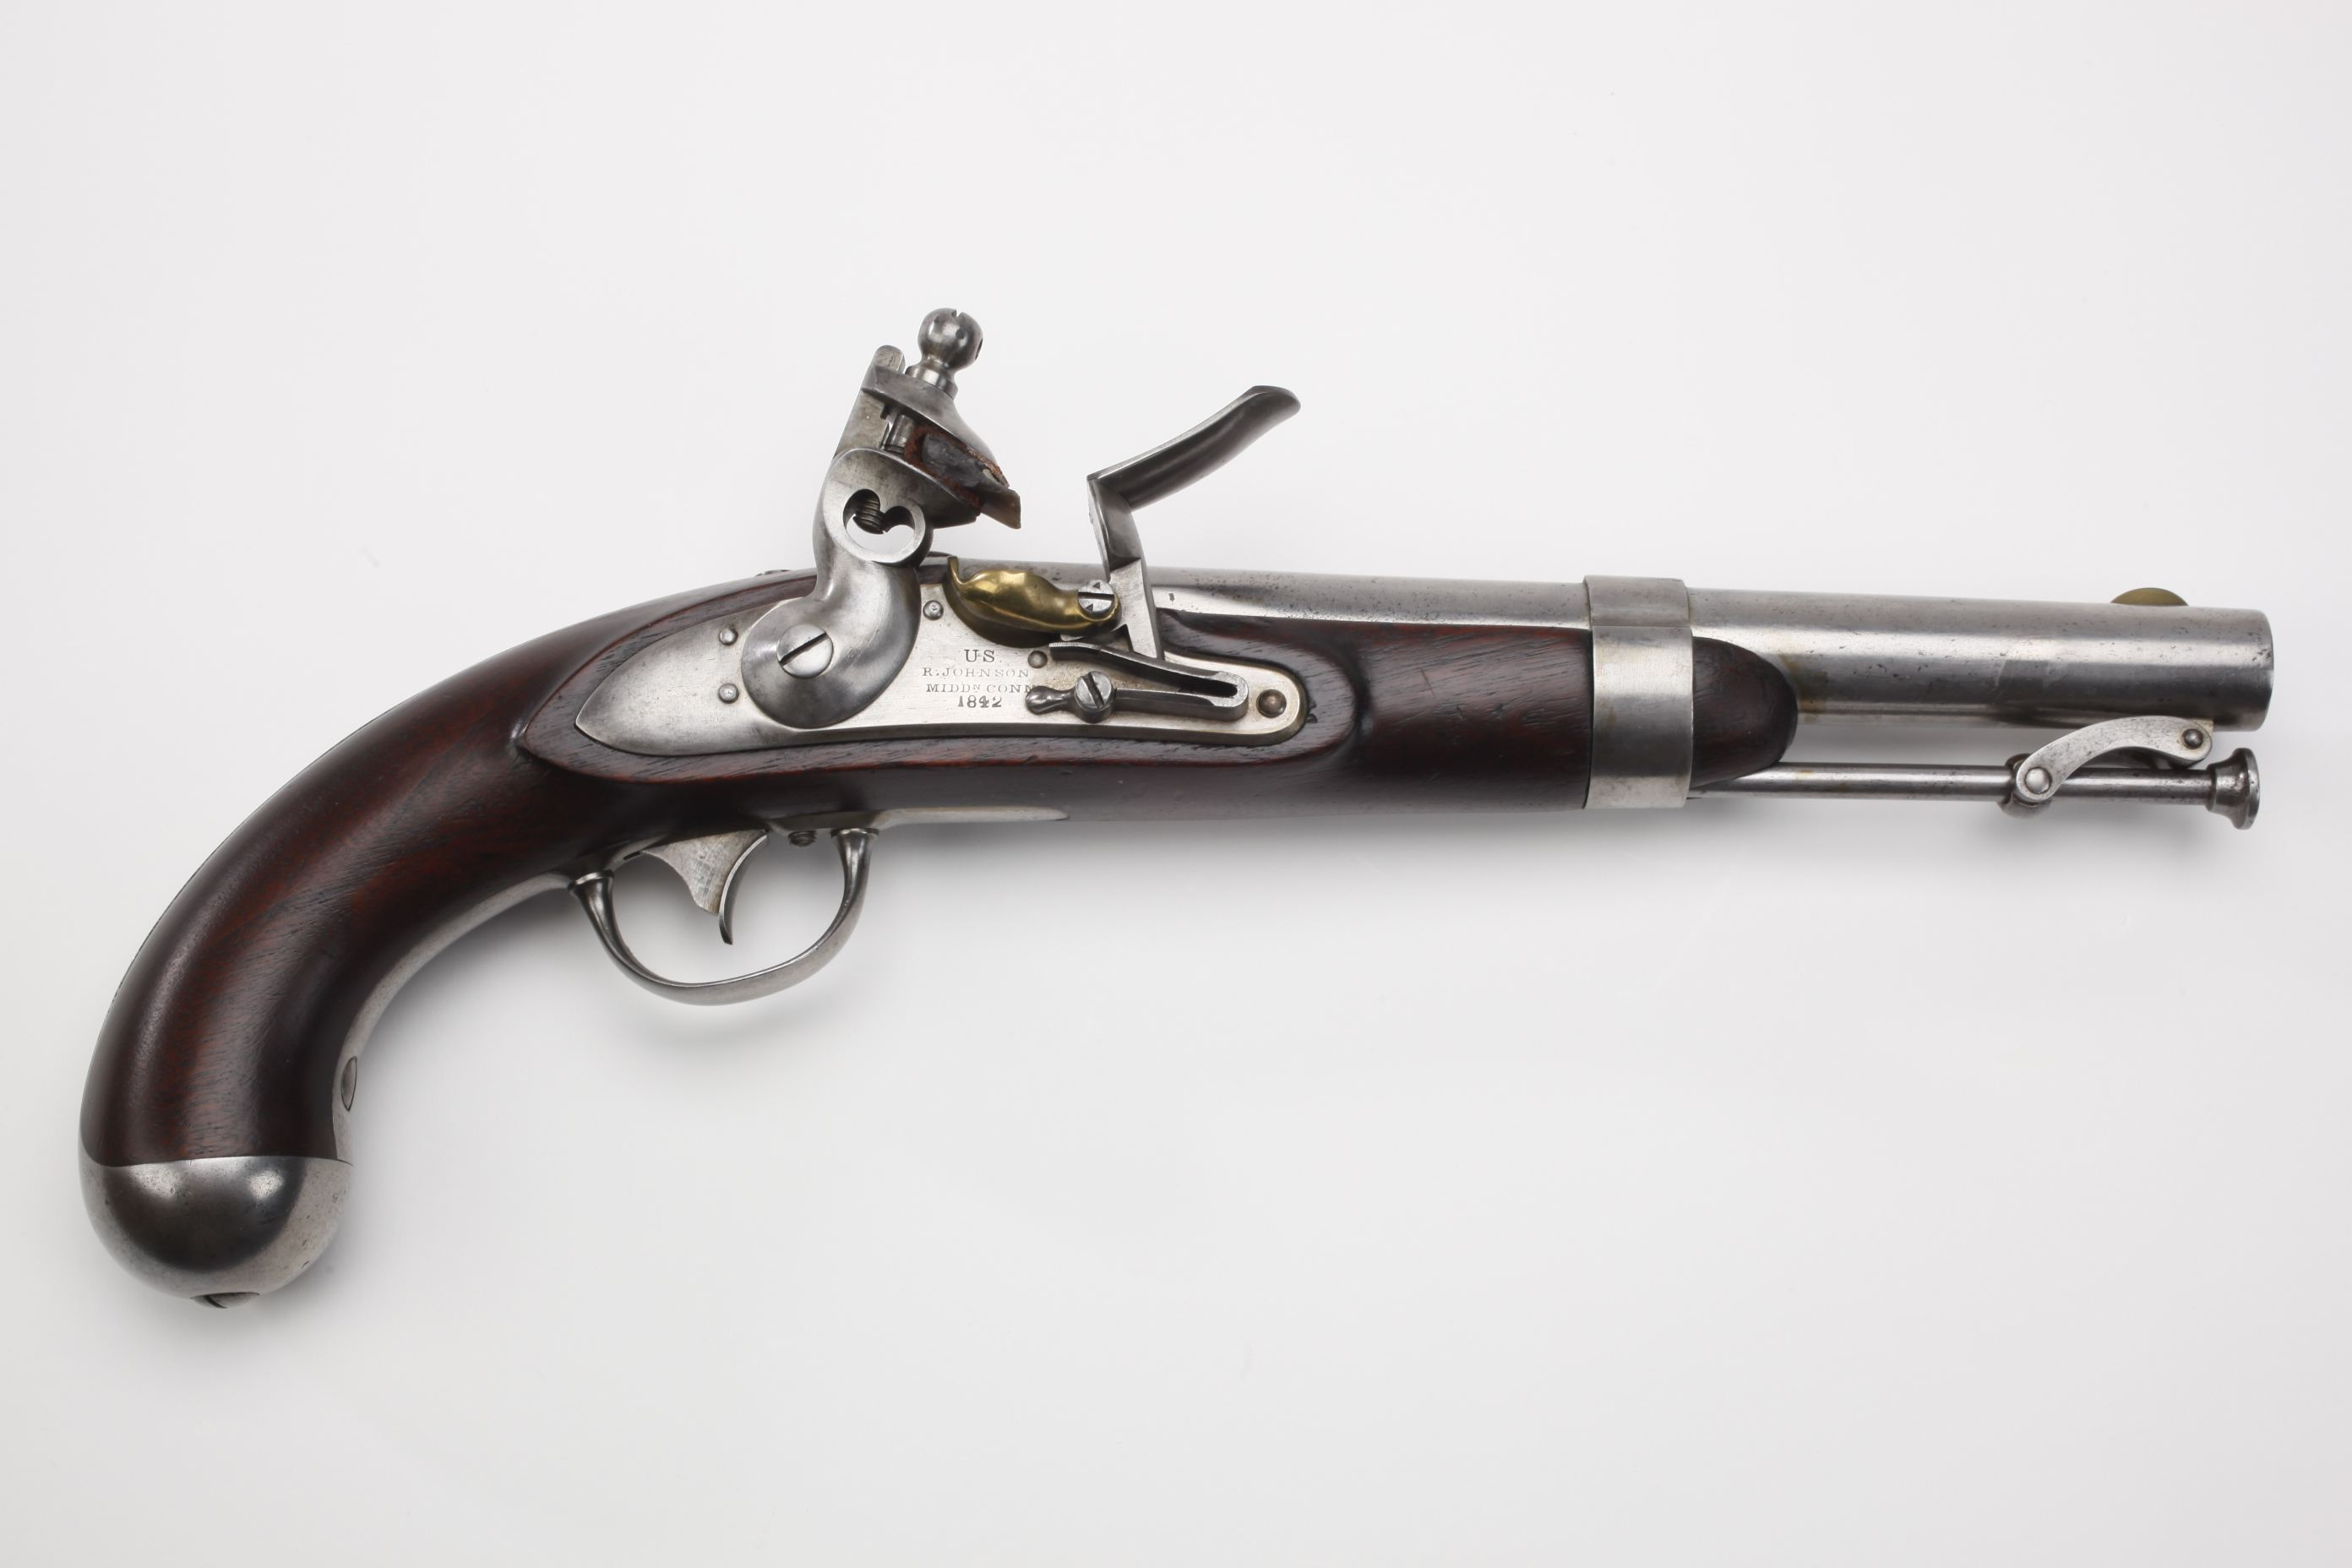 U.S. Robert Johnson Model 1836 Flintlock